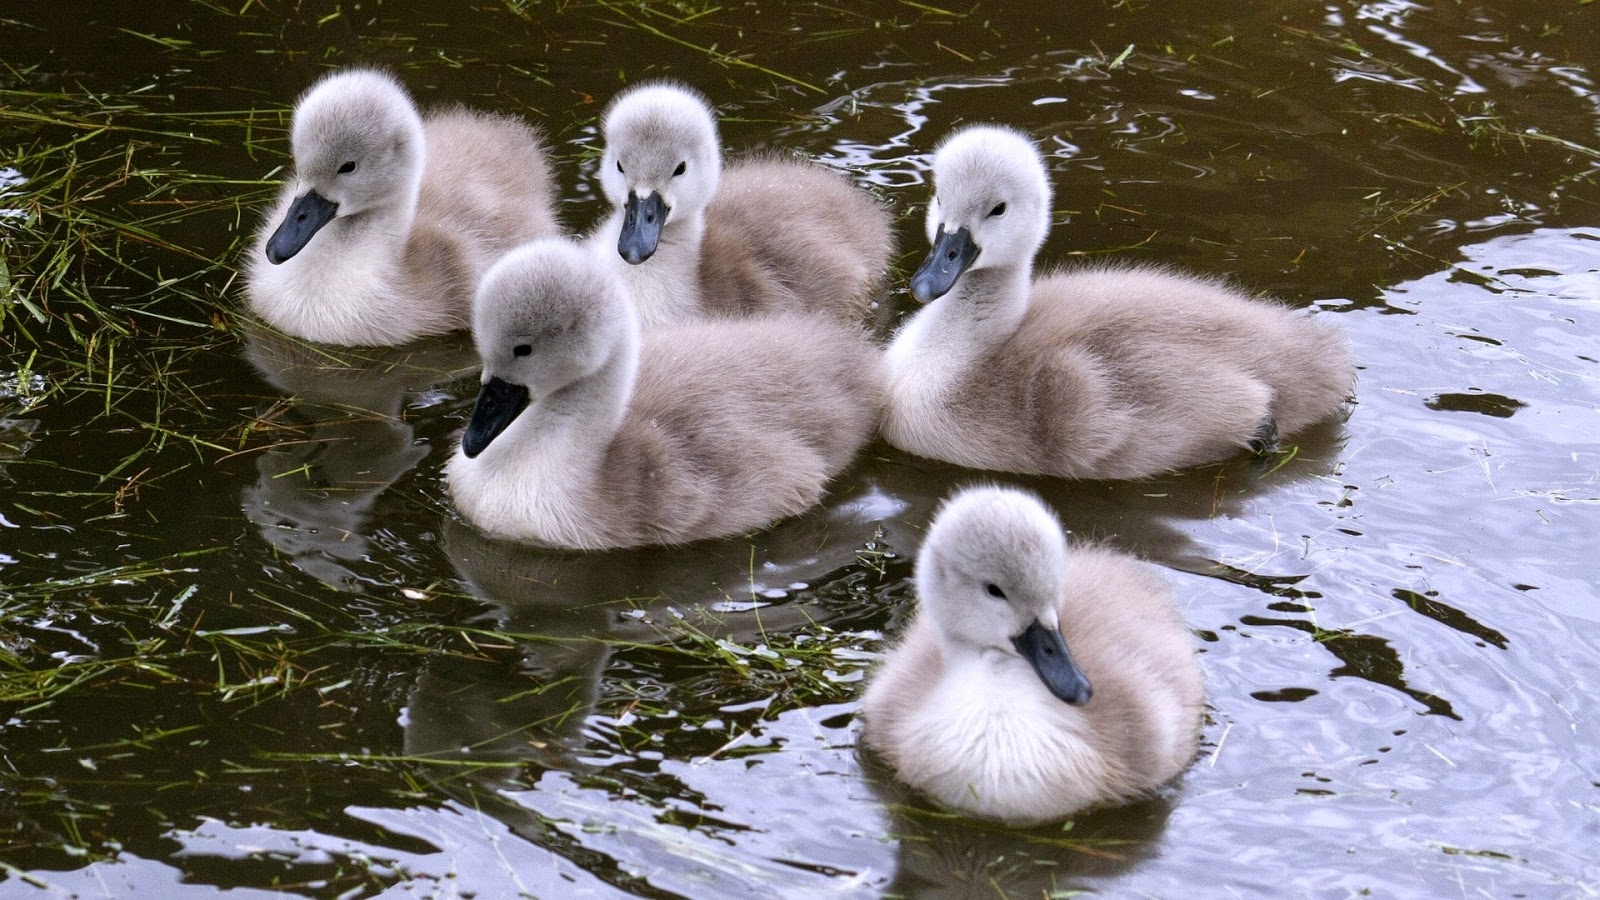 my best photo selection: Cute Baby Swan